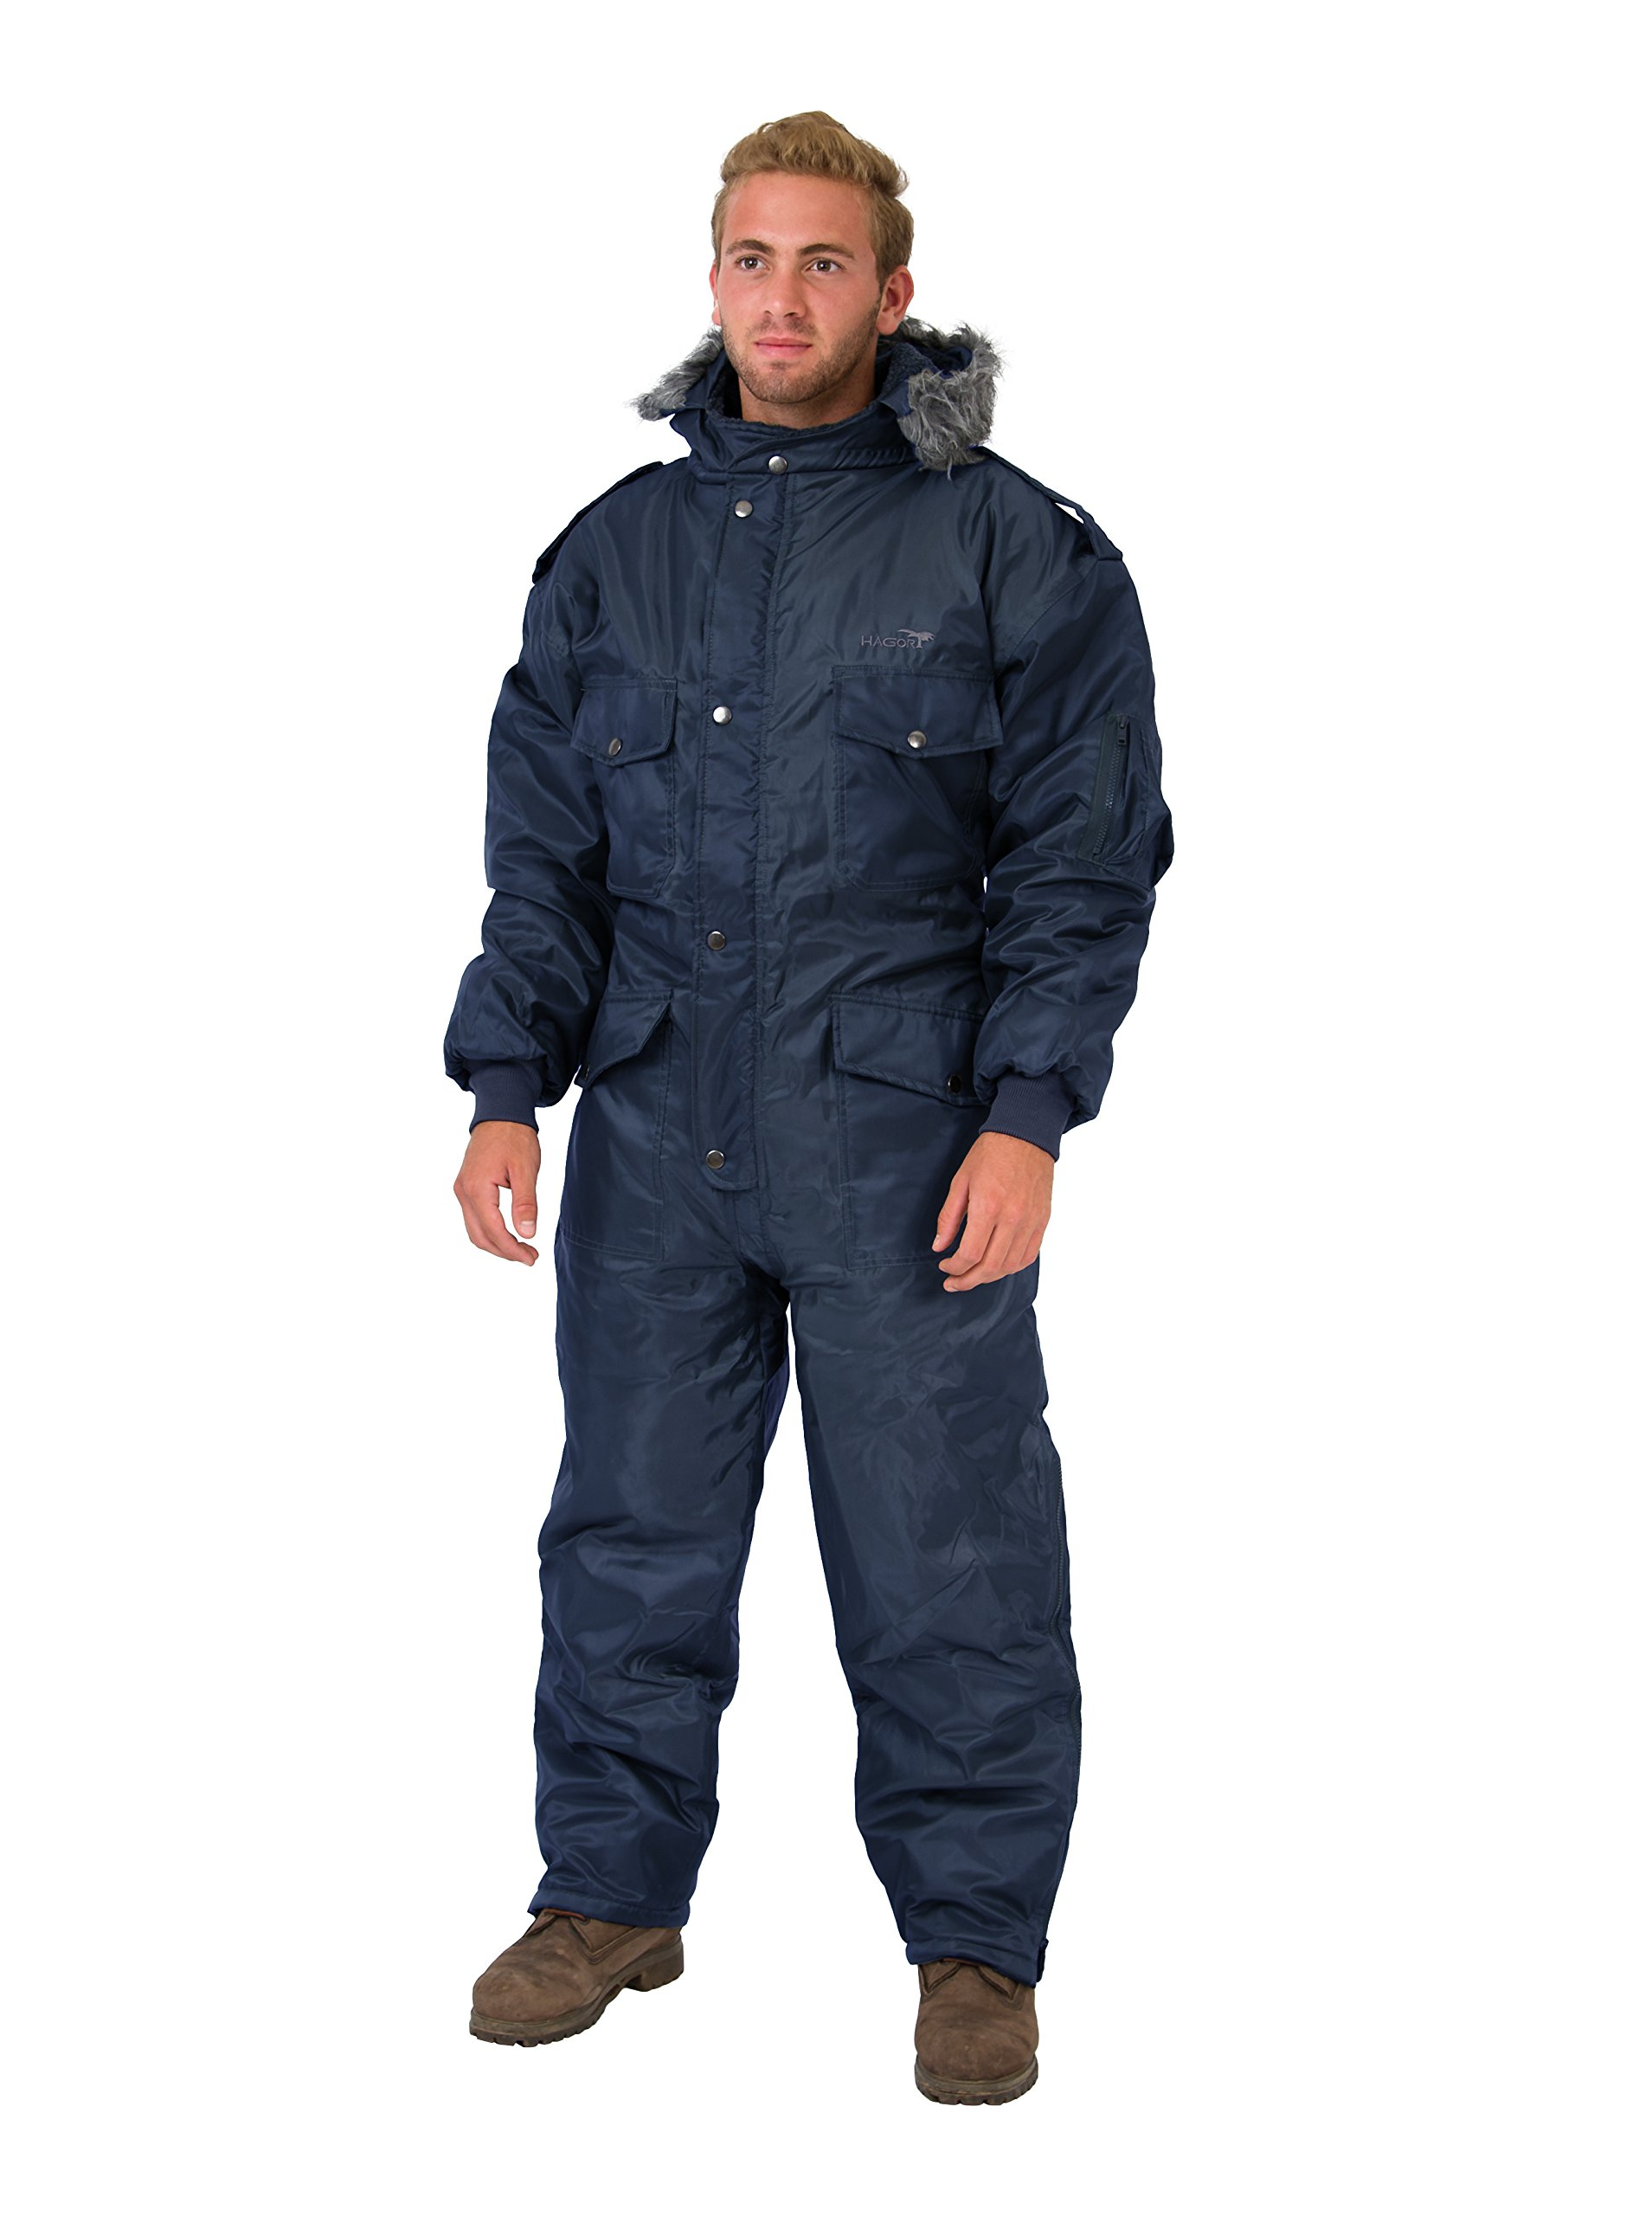 Navy Blue IDF Snowsuit Winter Clothing Snow Ski Suit Coverall Insulated Suit (L)